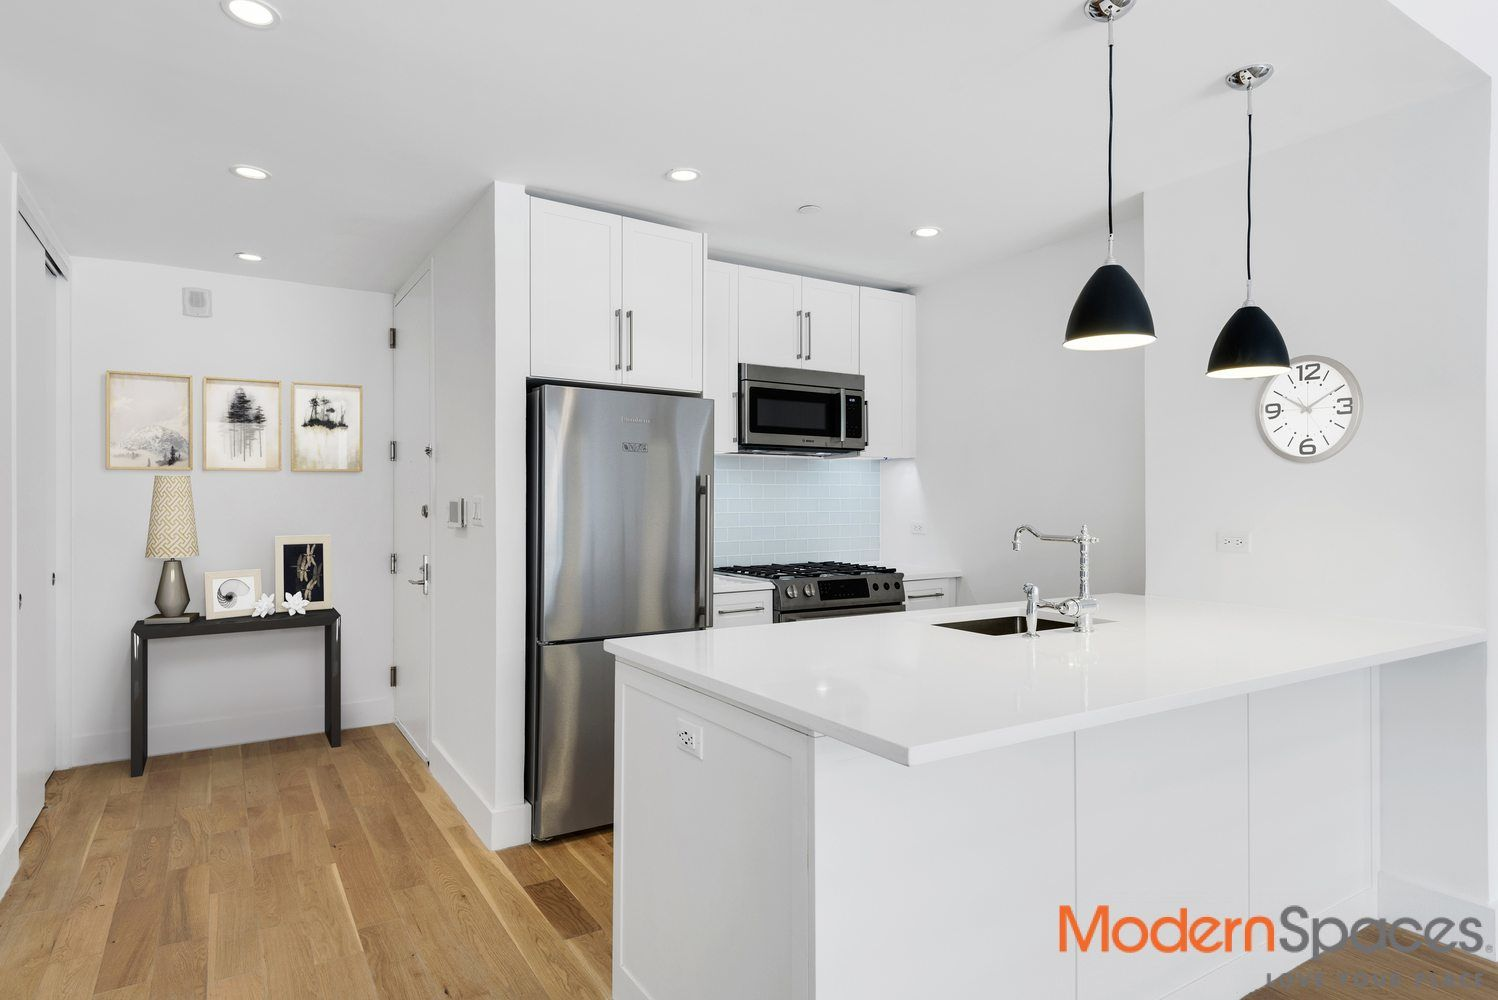 The Harrison, New To Market, 2 Bedrooms And 2 Baths Photo 6 - MODERNSPACESNYC-139631